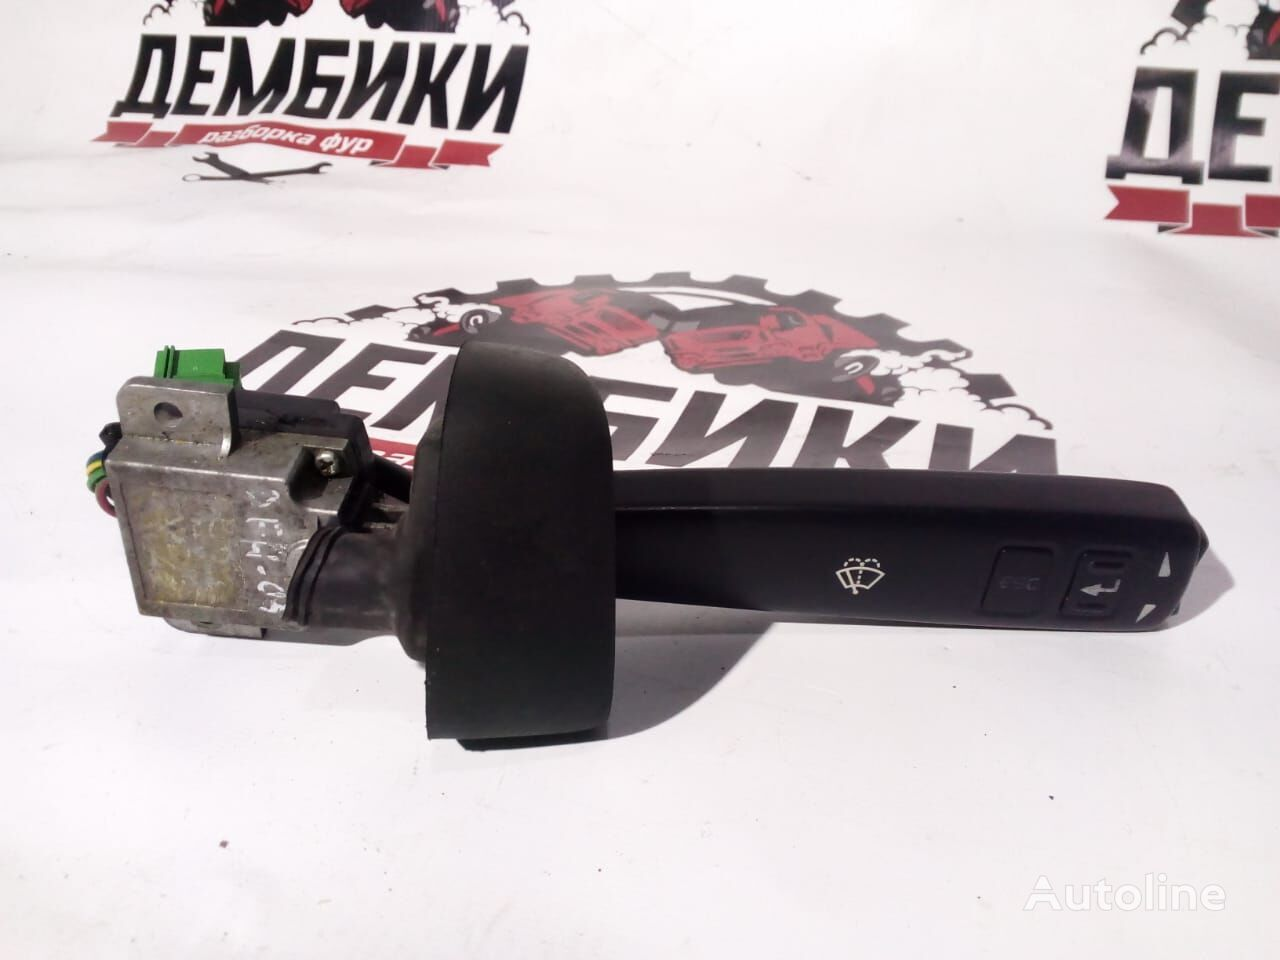 pravyy understeering switch for FH truck